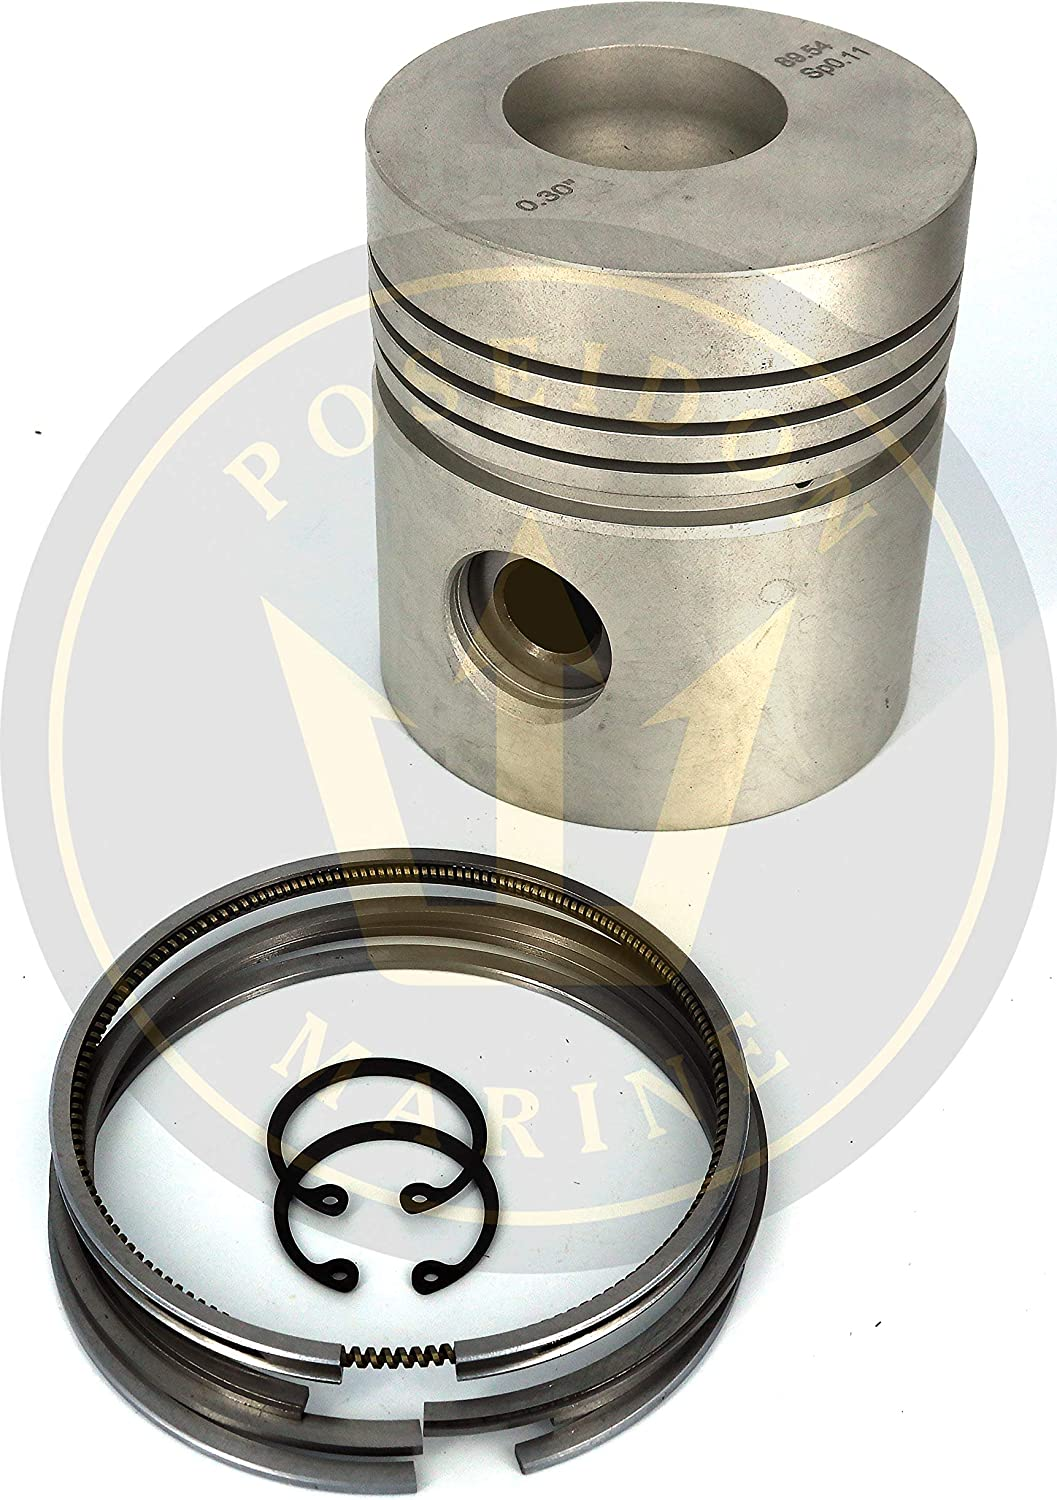 Poseidon Marine Piston kit Oversize 89.54mm 0.030  0.075mm for Volvo Penta MD1 MD2 MD3 RO  875579